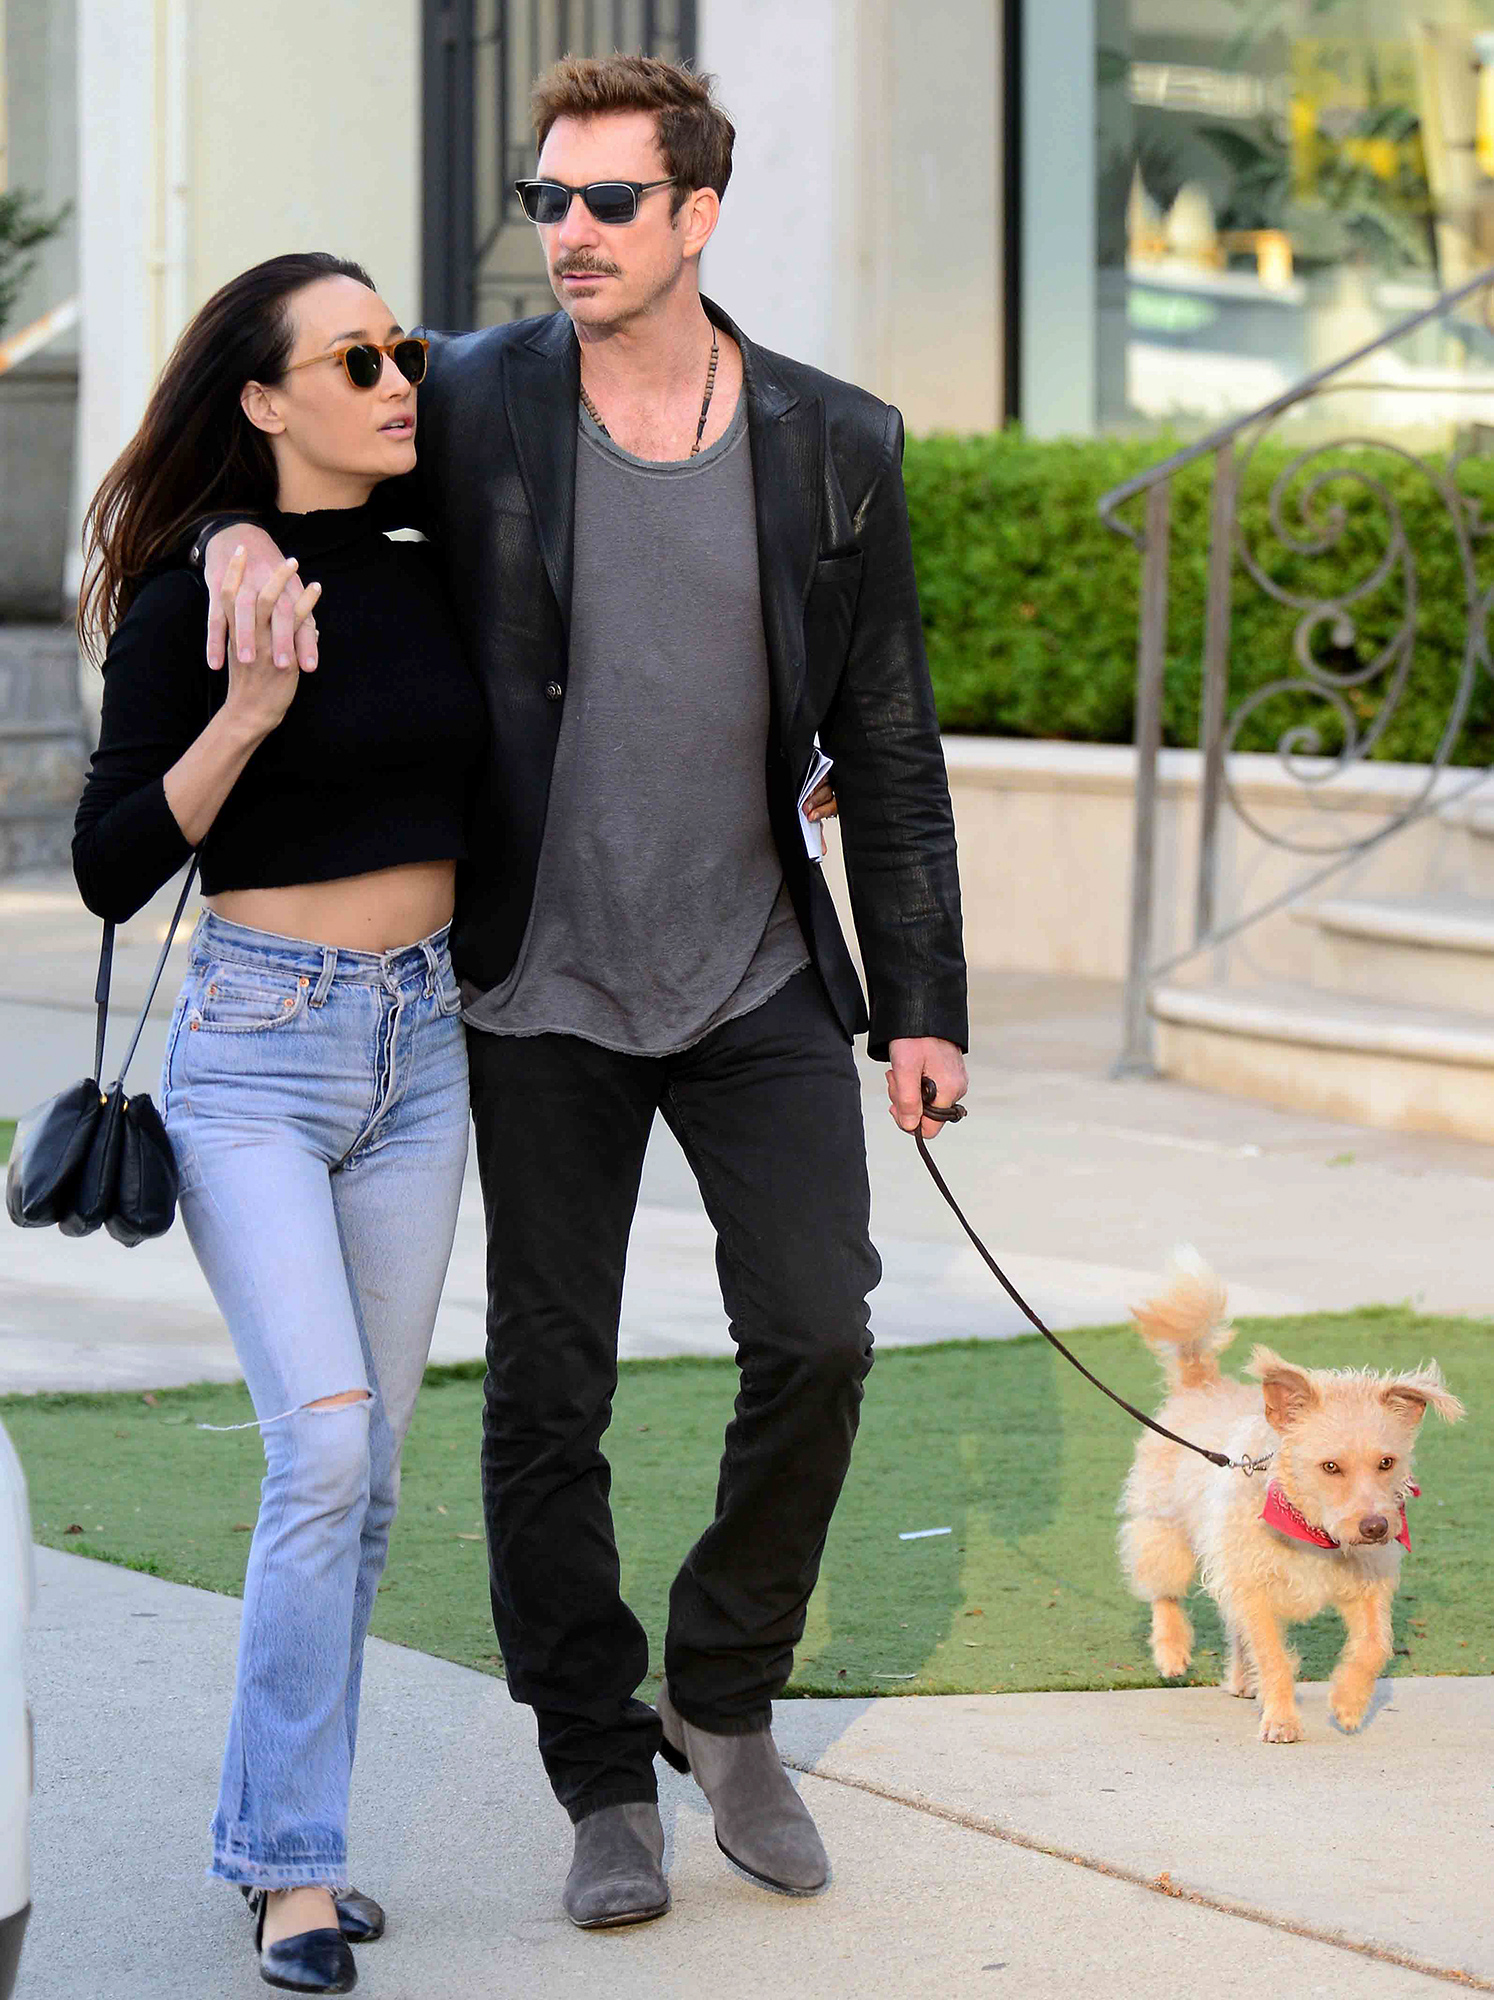 EXCLUSIVE: Dylan McDermott and Maggie Q walk their dog along Melrose Avenue